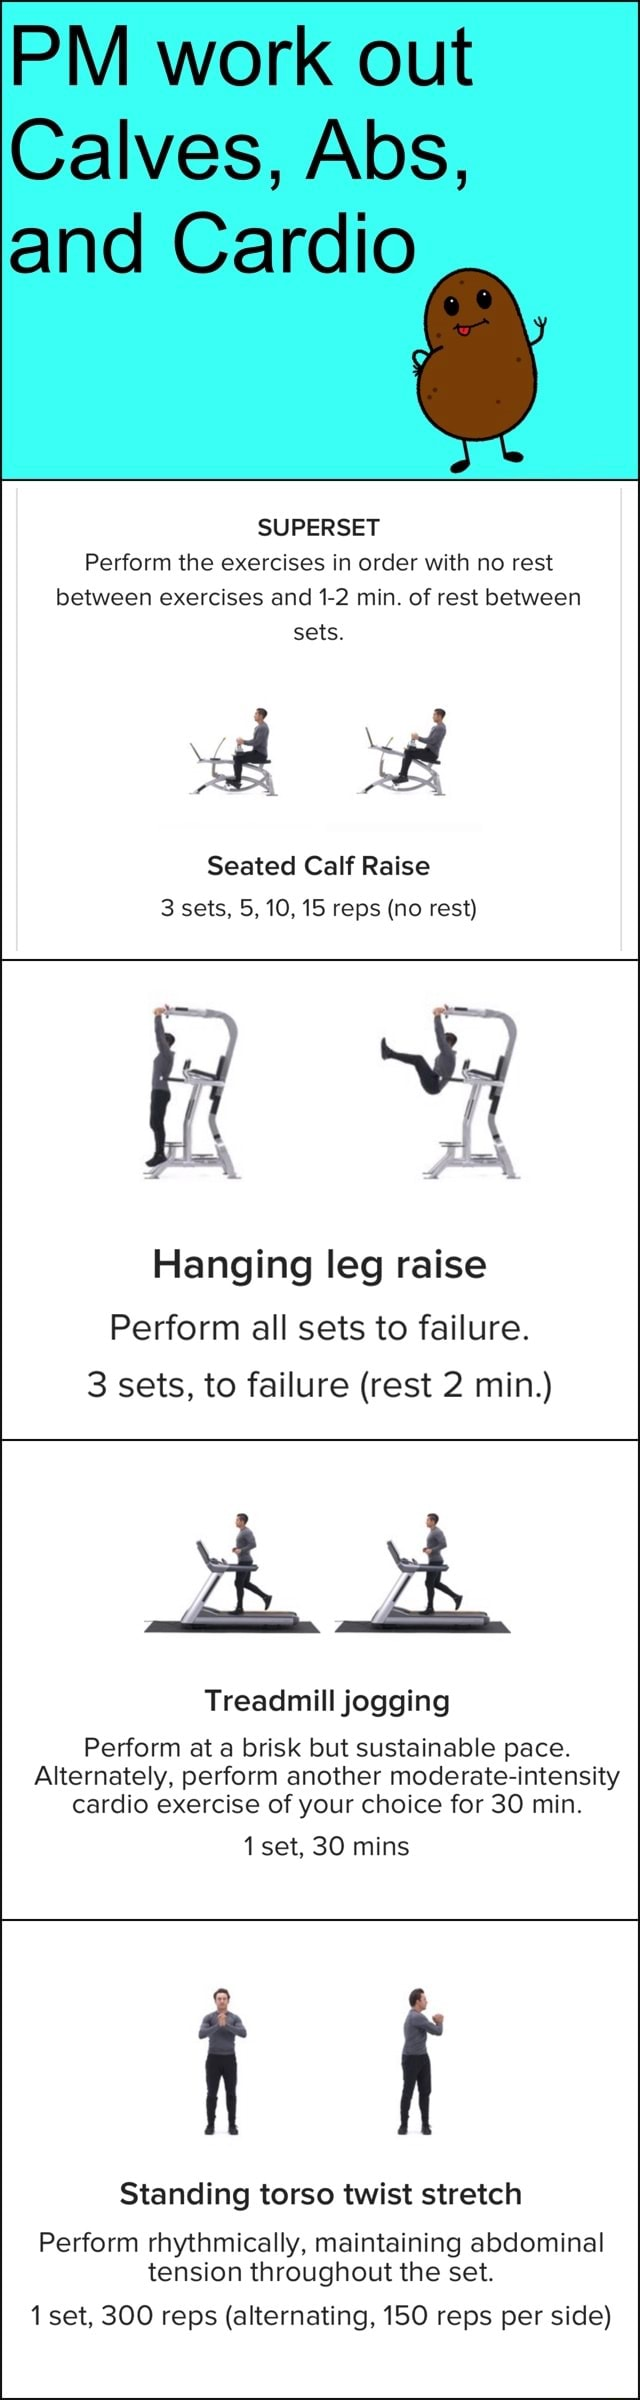 PM work out Calves, Abs, and Cardio SUPERSET Perform the exercises in order with no rest between exercises and 1 2 min. of rest between sets. Seated Calf Raise 3 sets, 5, 10, 15 reps no rest Hanging leg raise Perform all sets to failure. 3 sets, to failure rest 2 min. ah ok Treadmill jogging Perform at a brisk but sustainable pace. Alternately, perform another moderate intensity cardio exercise of your choice for 30 min. 1 set, 30 mins Standing torso twist stretch Perform rhythmically, maintaining abdominal tension throughout the set. 1 set, 300 reps alternating, 150 reps per side meme